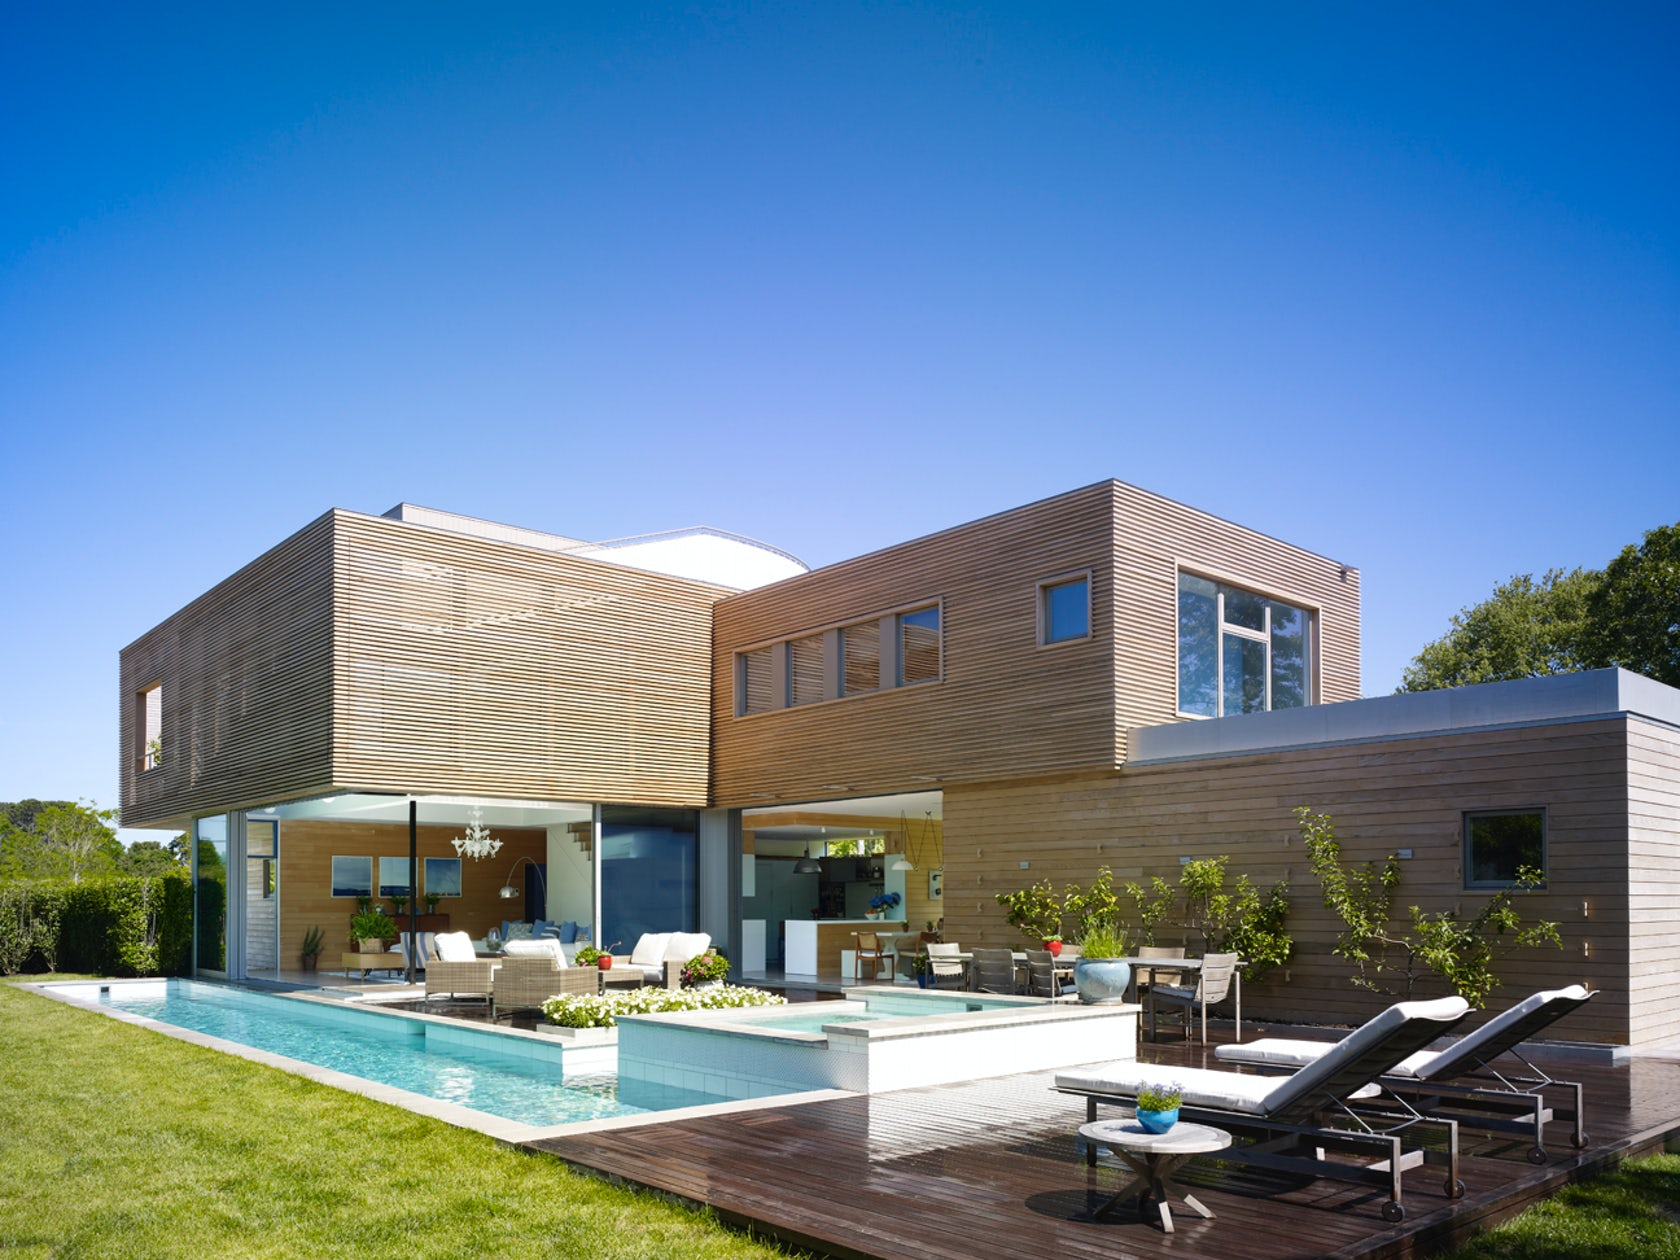 Hamptons new york residence architizer - Residence secondaire austin patterson disston ...